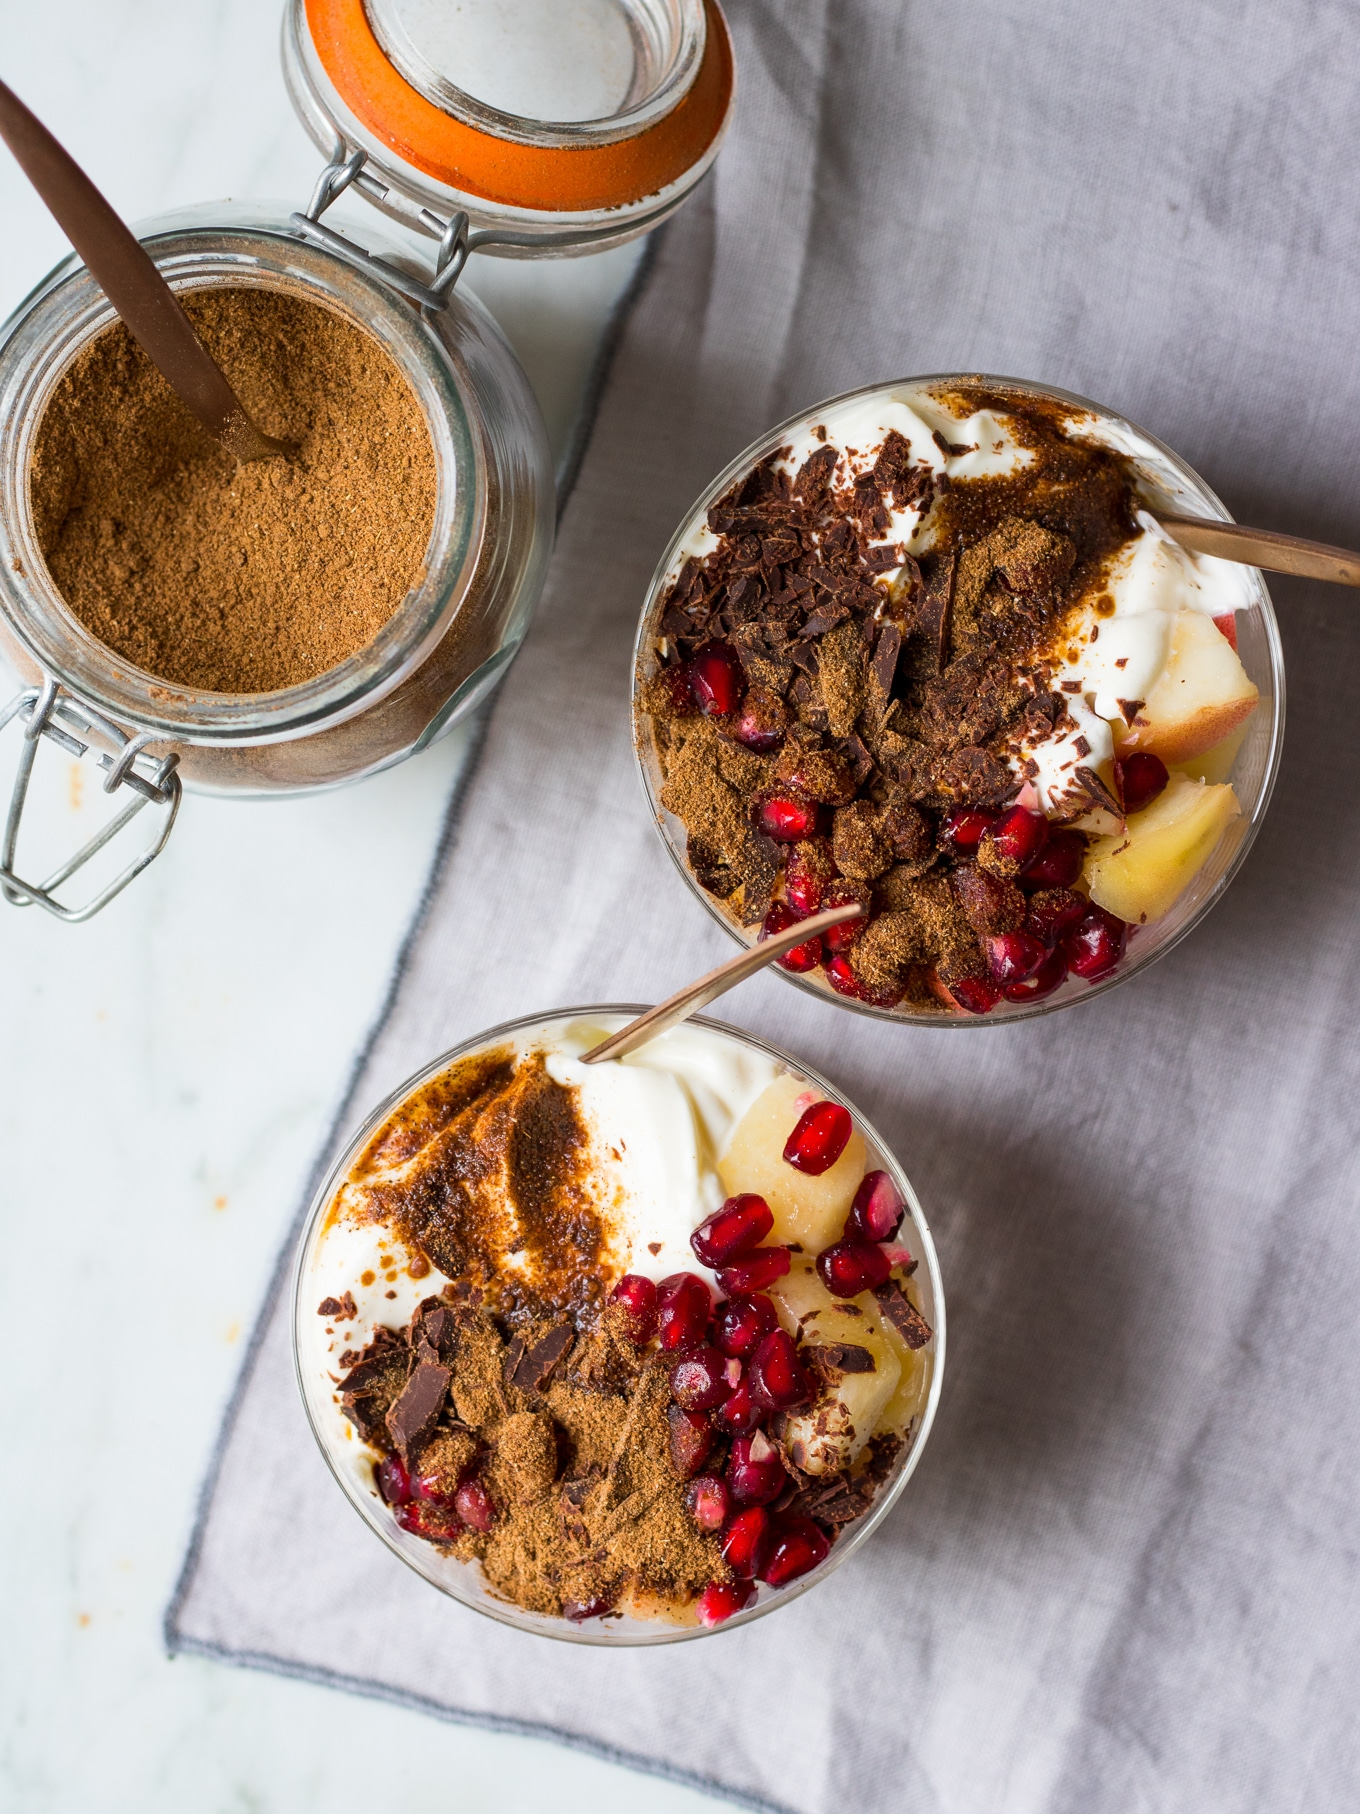 Chai Yoghurt Dessert Pots made with DIY chai latte mix! Juicy fruit, creamy yoghurt (dairy or coconut), grated chocolate and chai spices. A super easy healthy dessert that feels decadent! #healthydessert #glutenfree #dessertpots